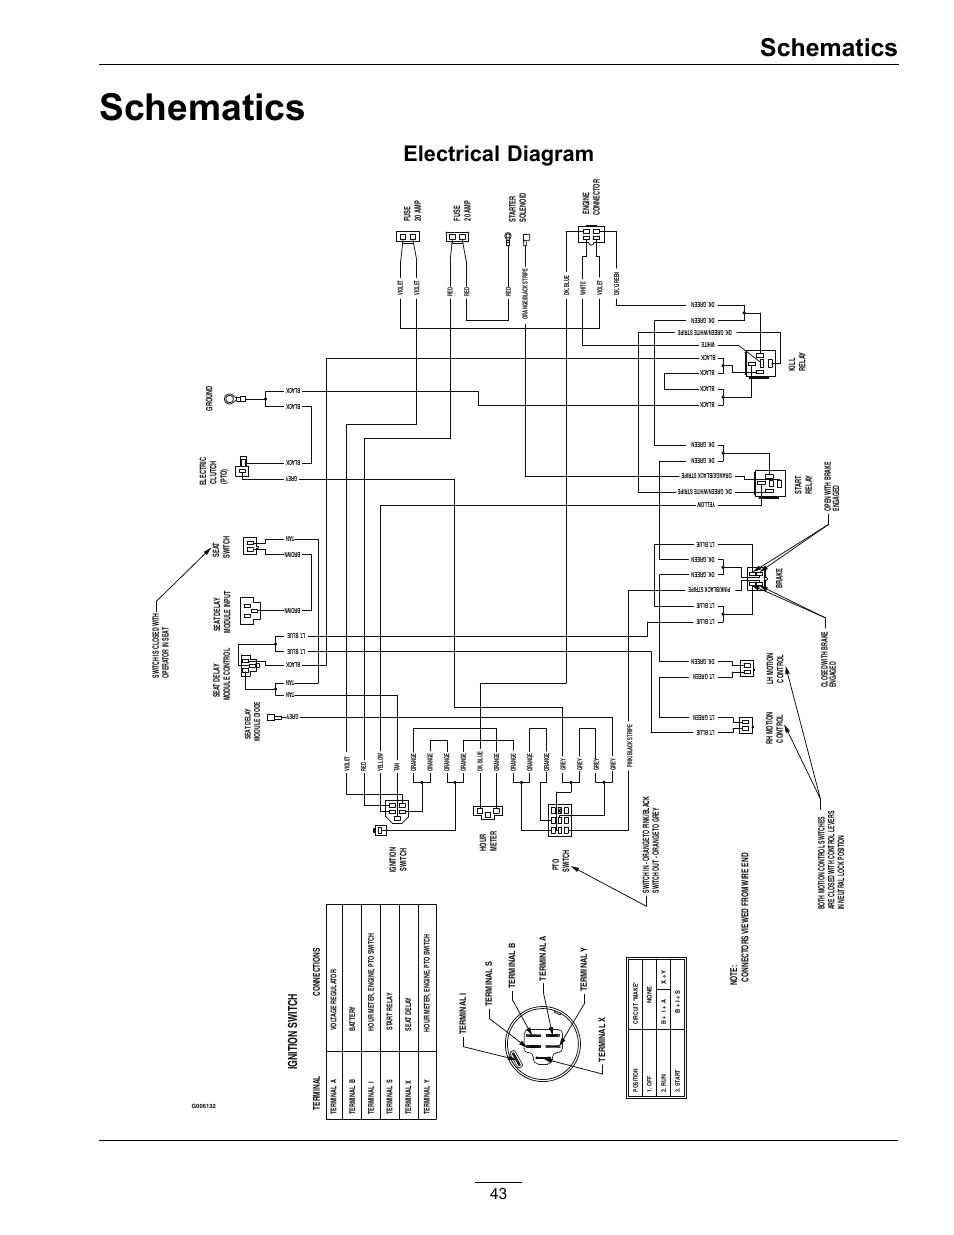 schematics  electrical diagram  ignition switch